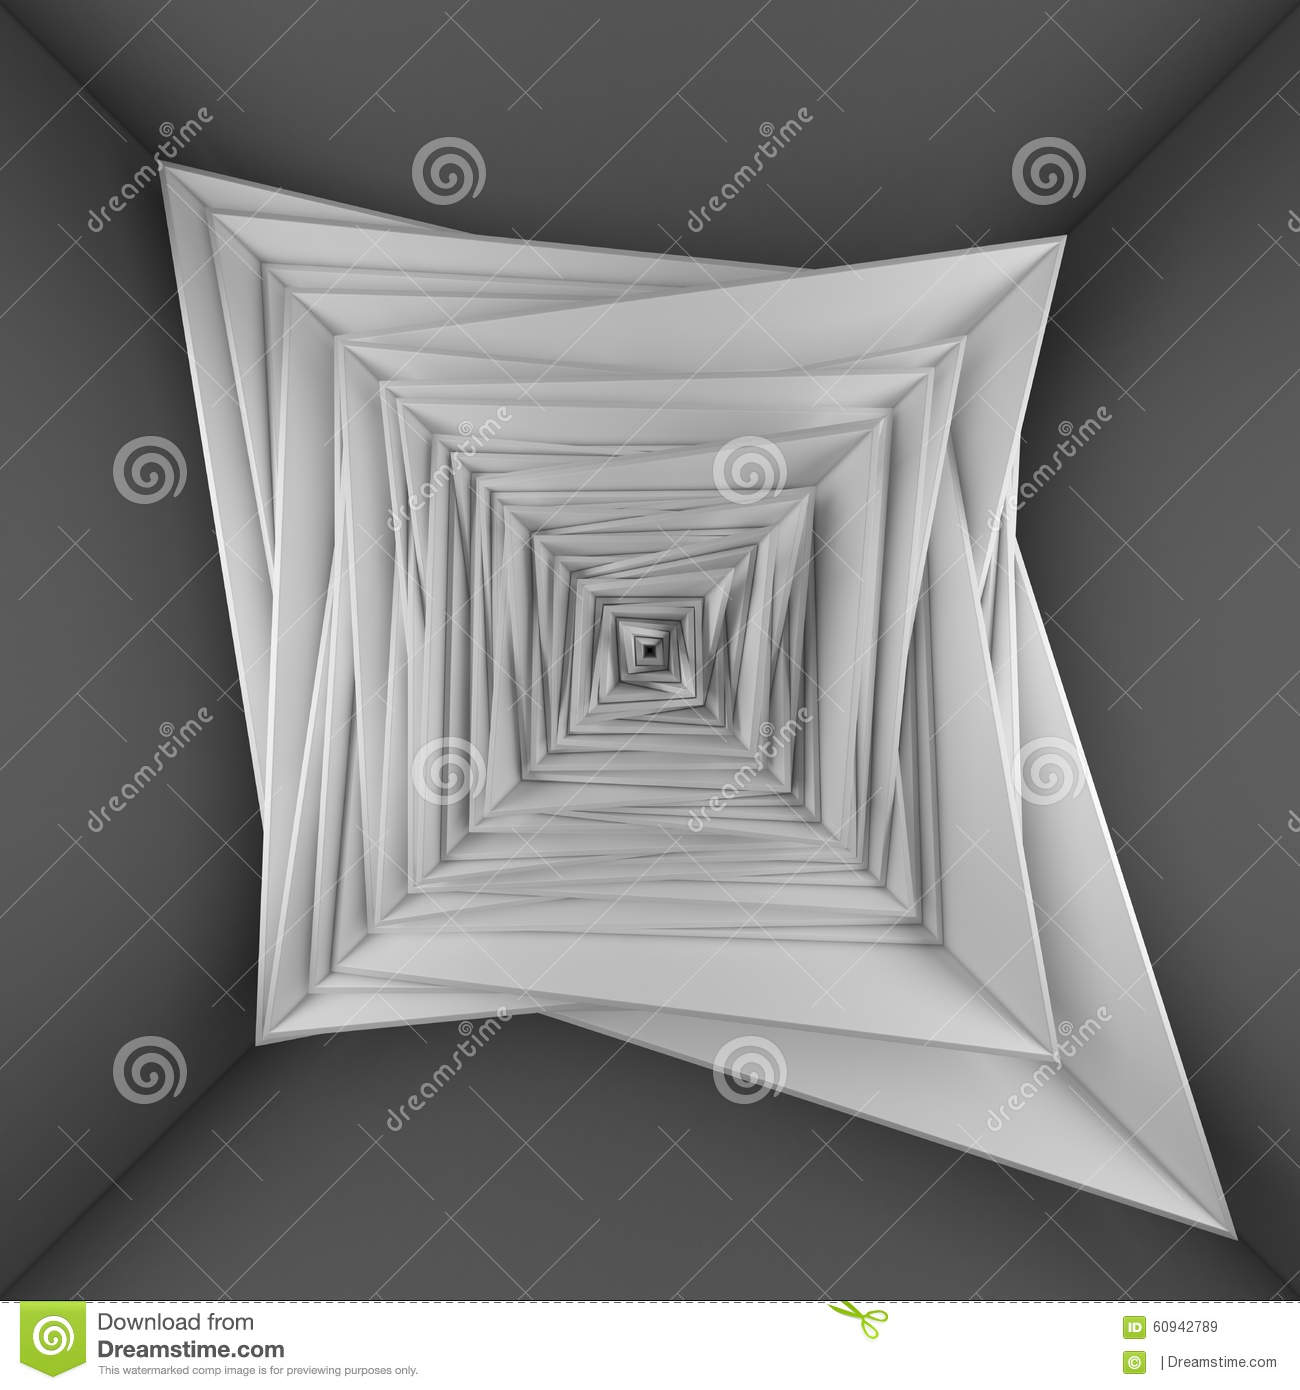 7842b744c78 blank abstract noised frames on white wall. More similar stock illustrations